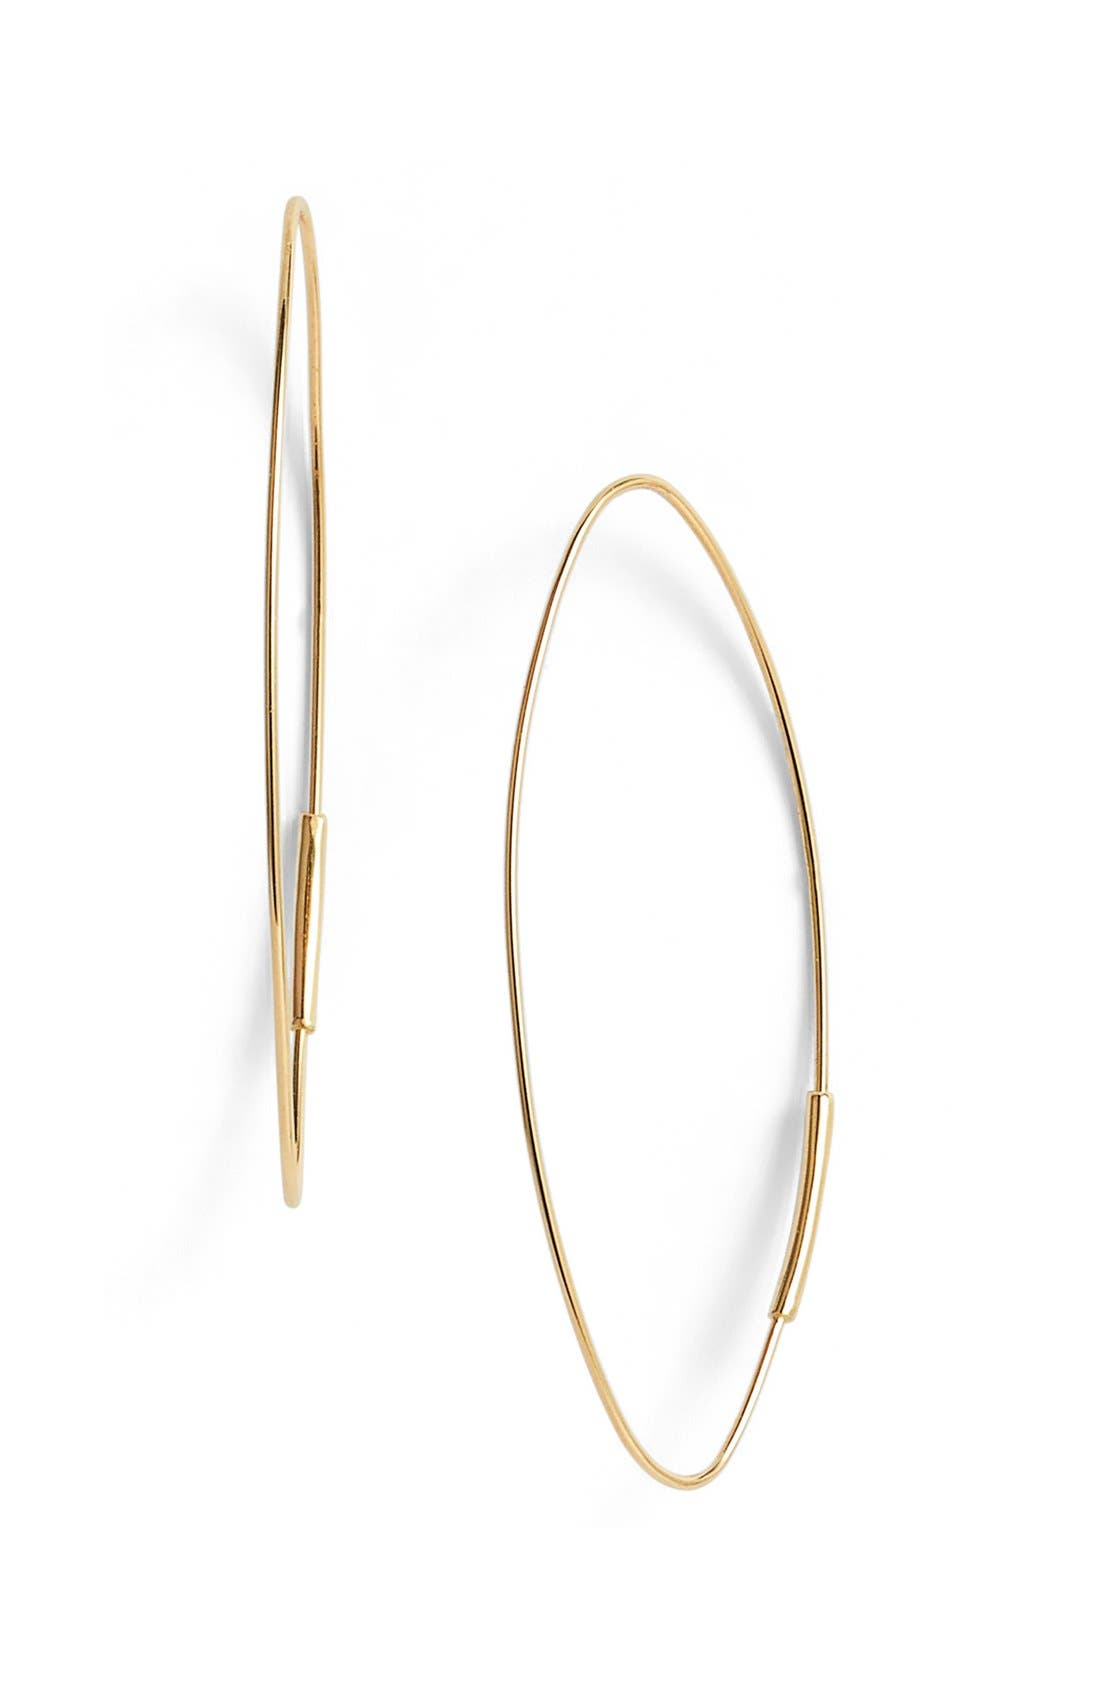 Alternate Image 1 Selected - Lana Jewelry 'Magic' Small Oval Hoop Earrings